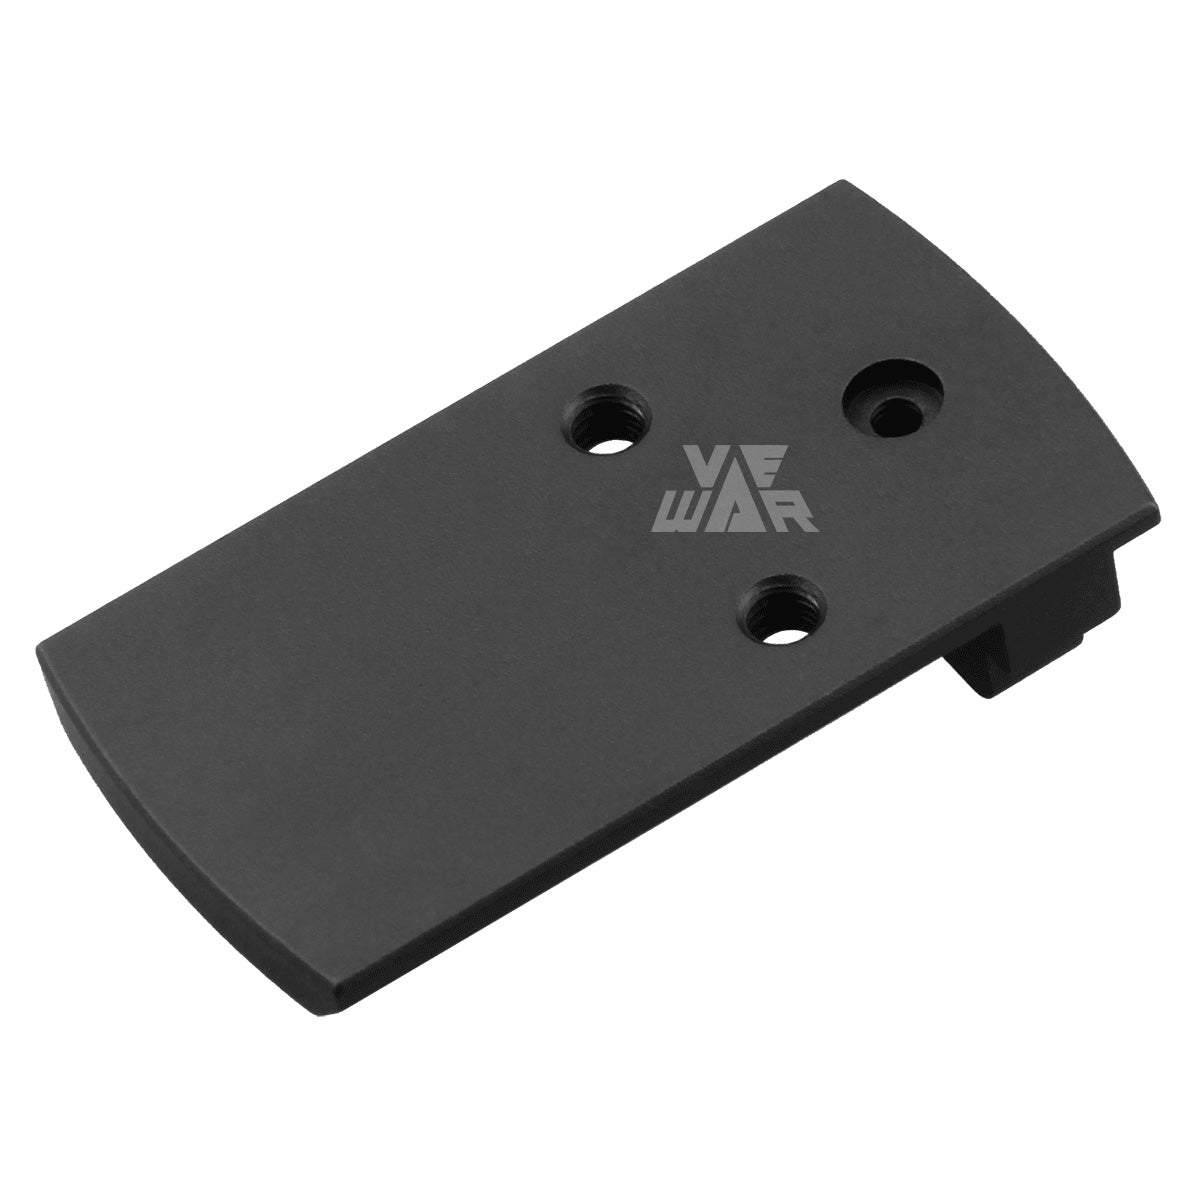 VeWar GLOK Pistol Red Dot Sight Mount